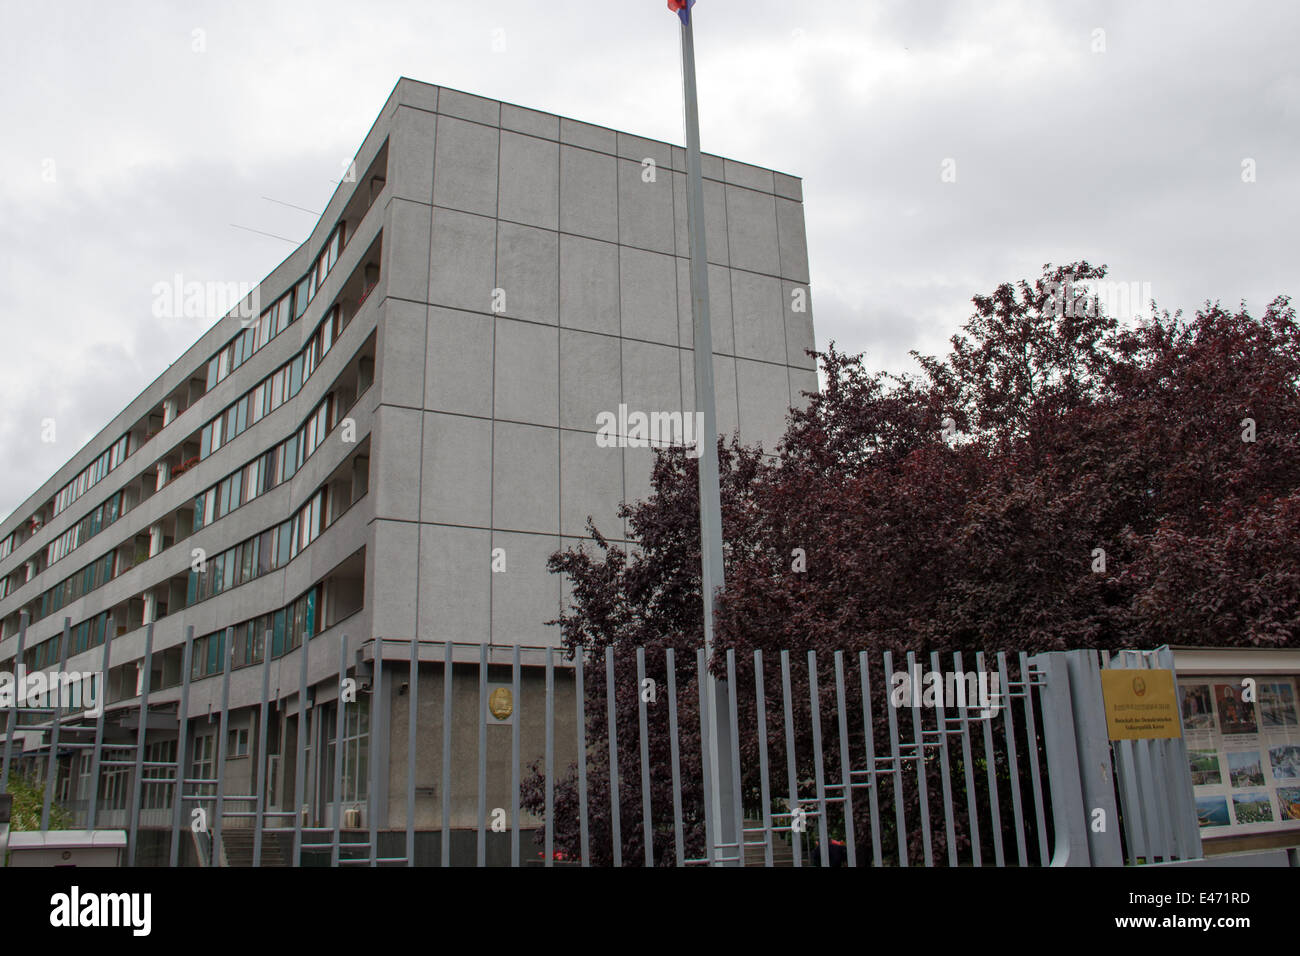 Germany: North Korean Embassy in Berlin. Photo from 21 June 2014. - Stock Image